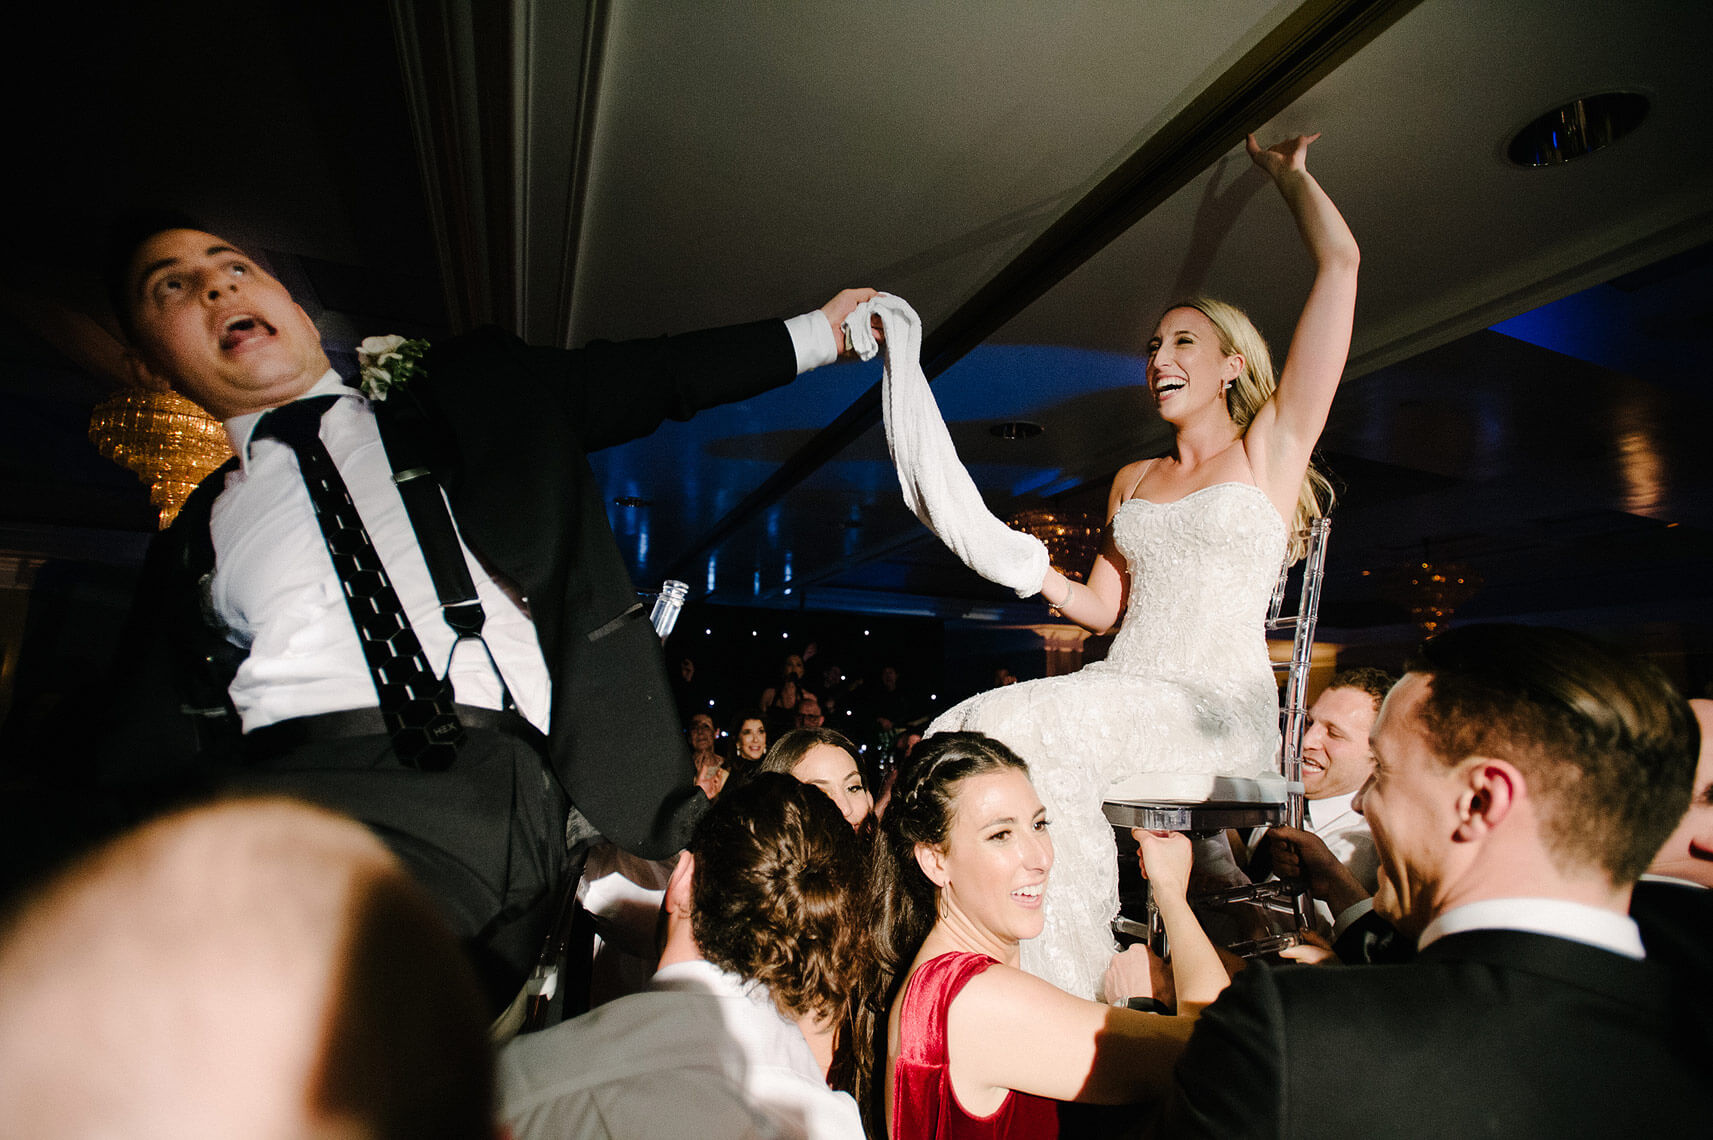 bride touches ceiling as groom ducks head during horah dance at west hollywood wedding reception